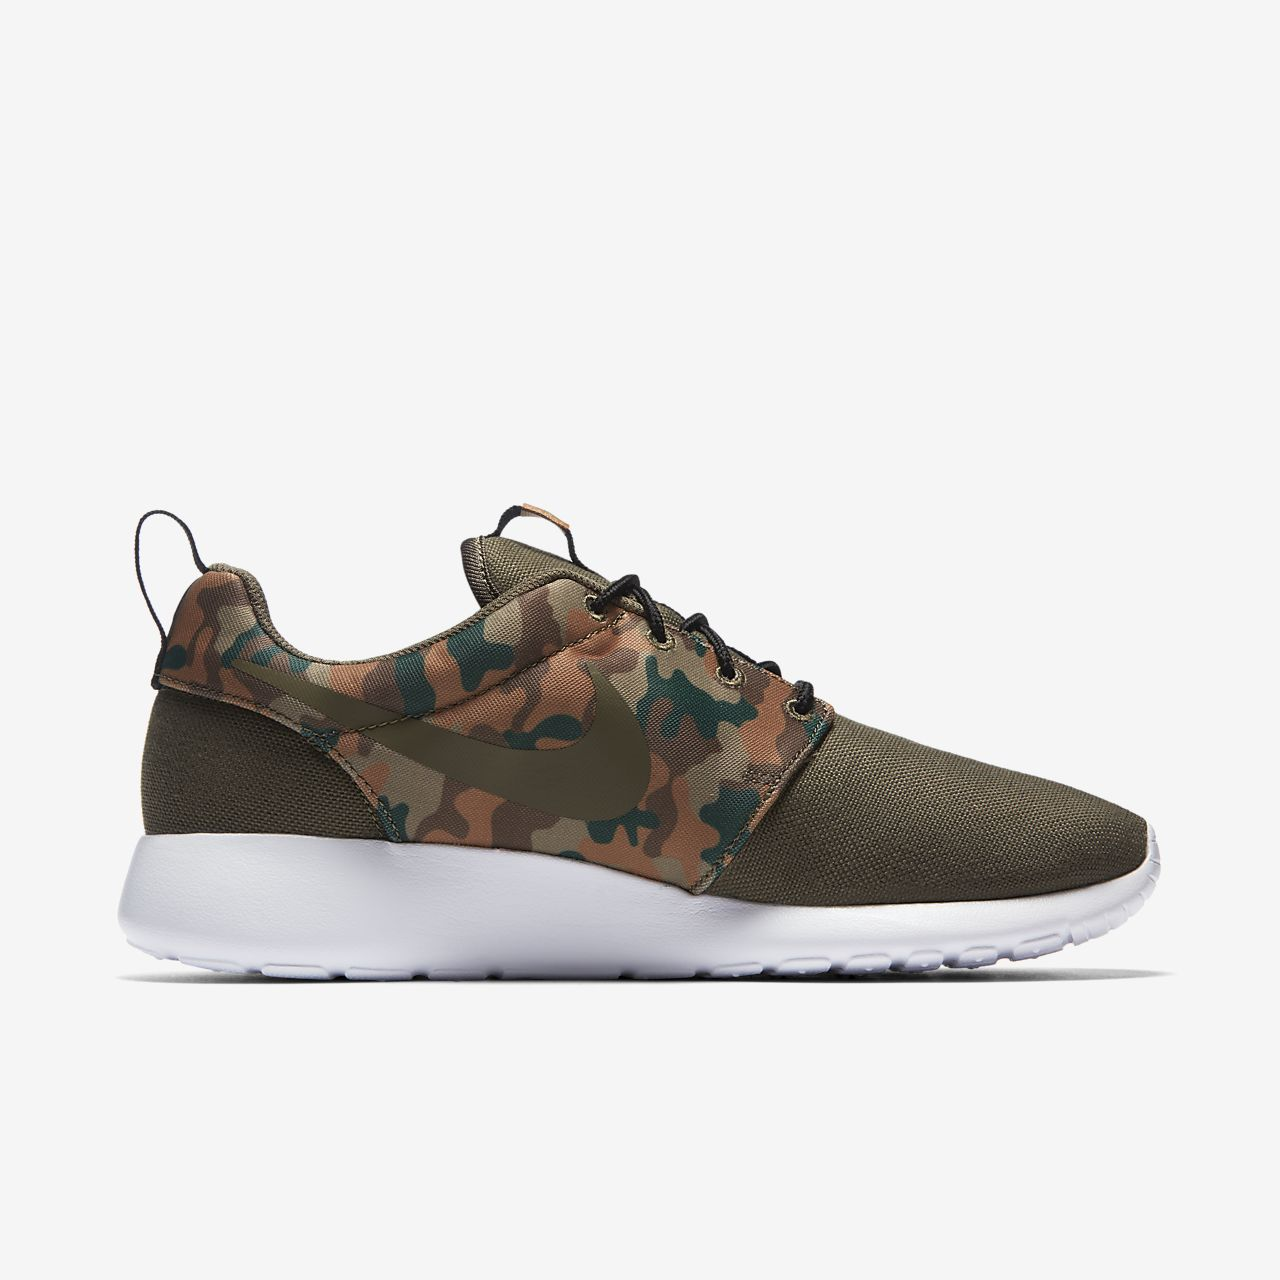 new concept 67f09 b3e20 Low Resolution Nike Roshe One SE Mens Shoe Nike Roshe One SE Mens Shoe